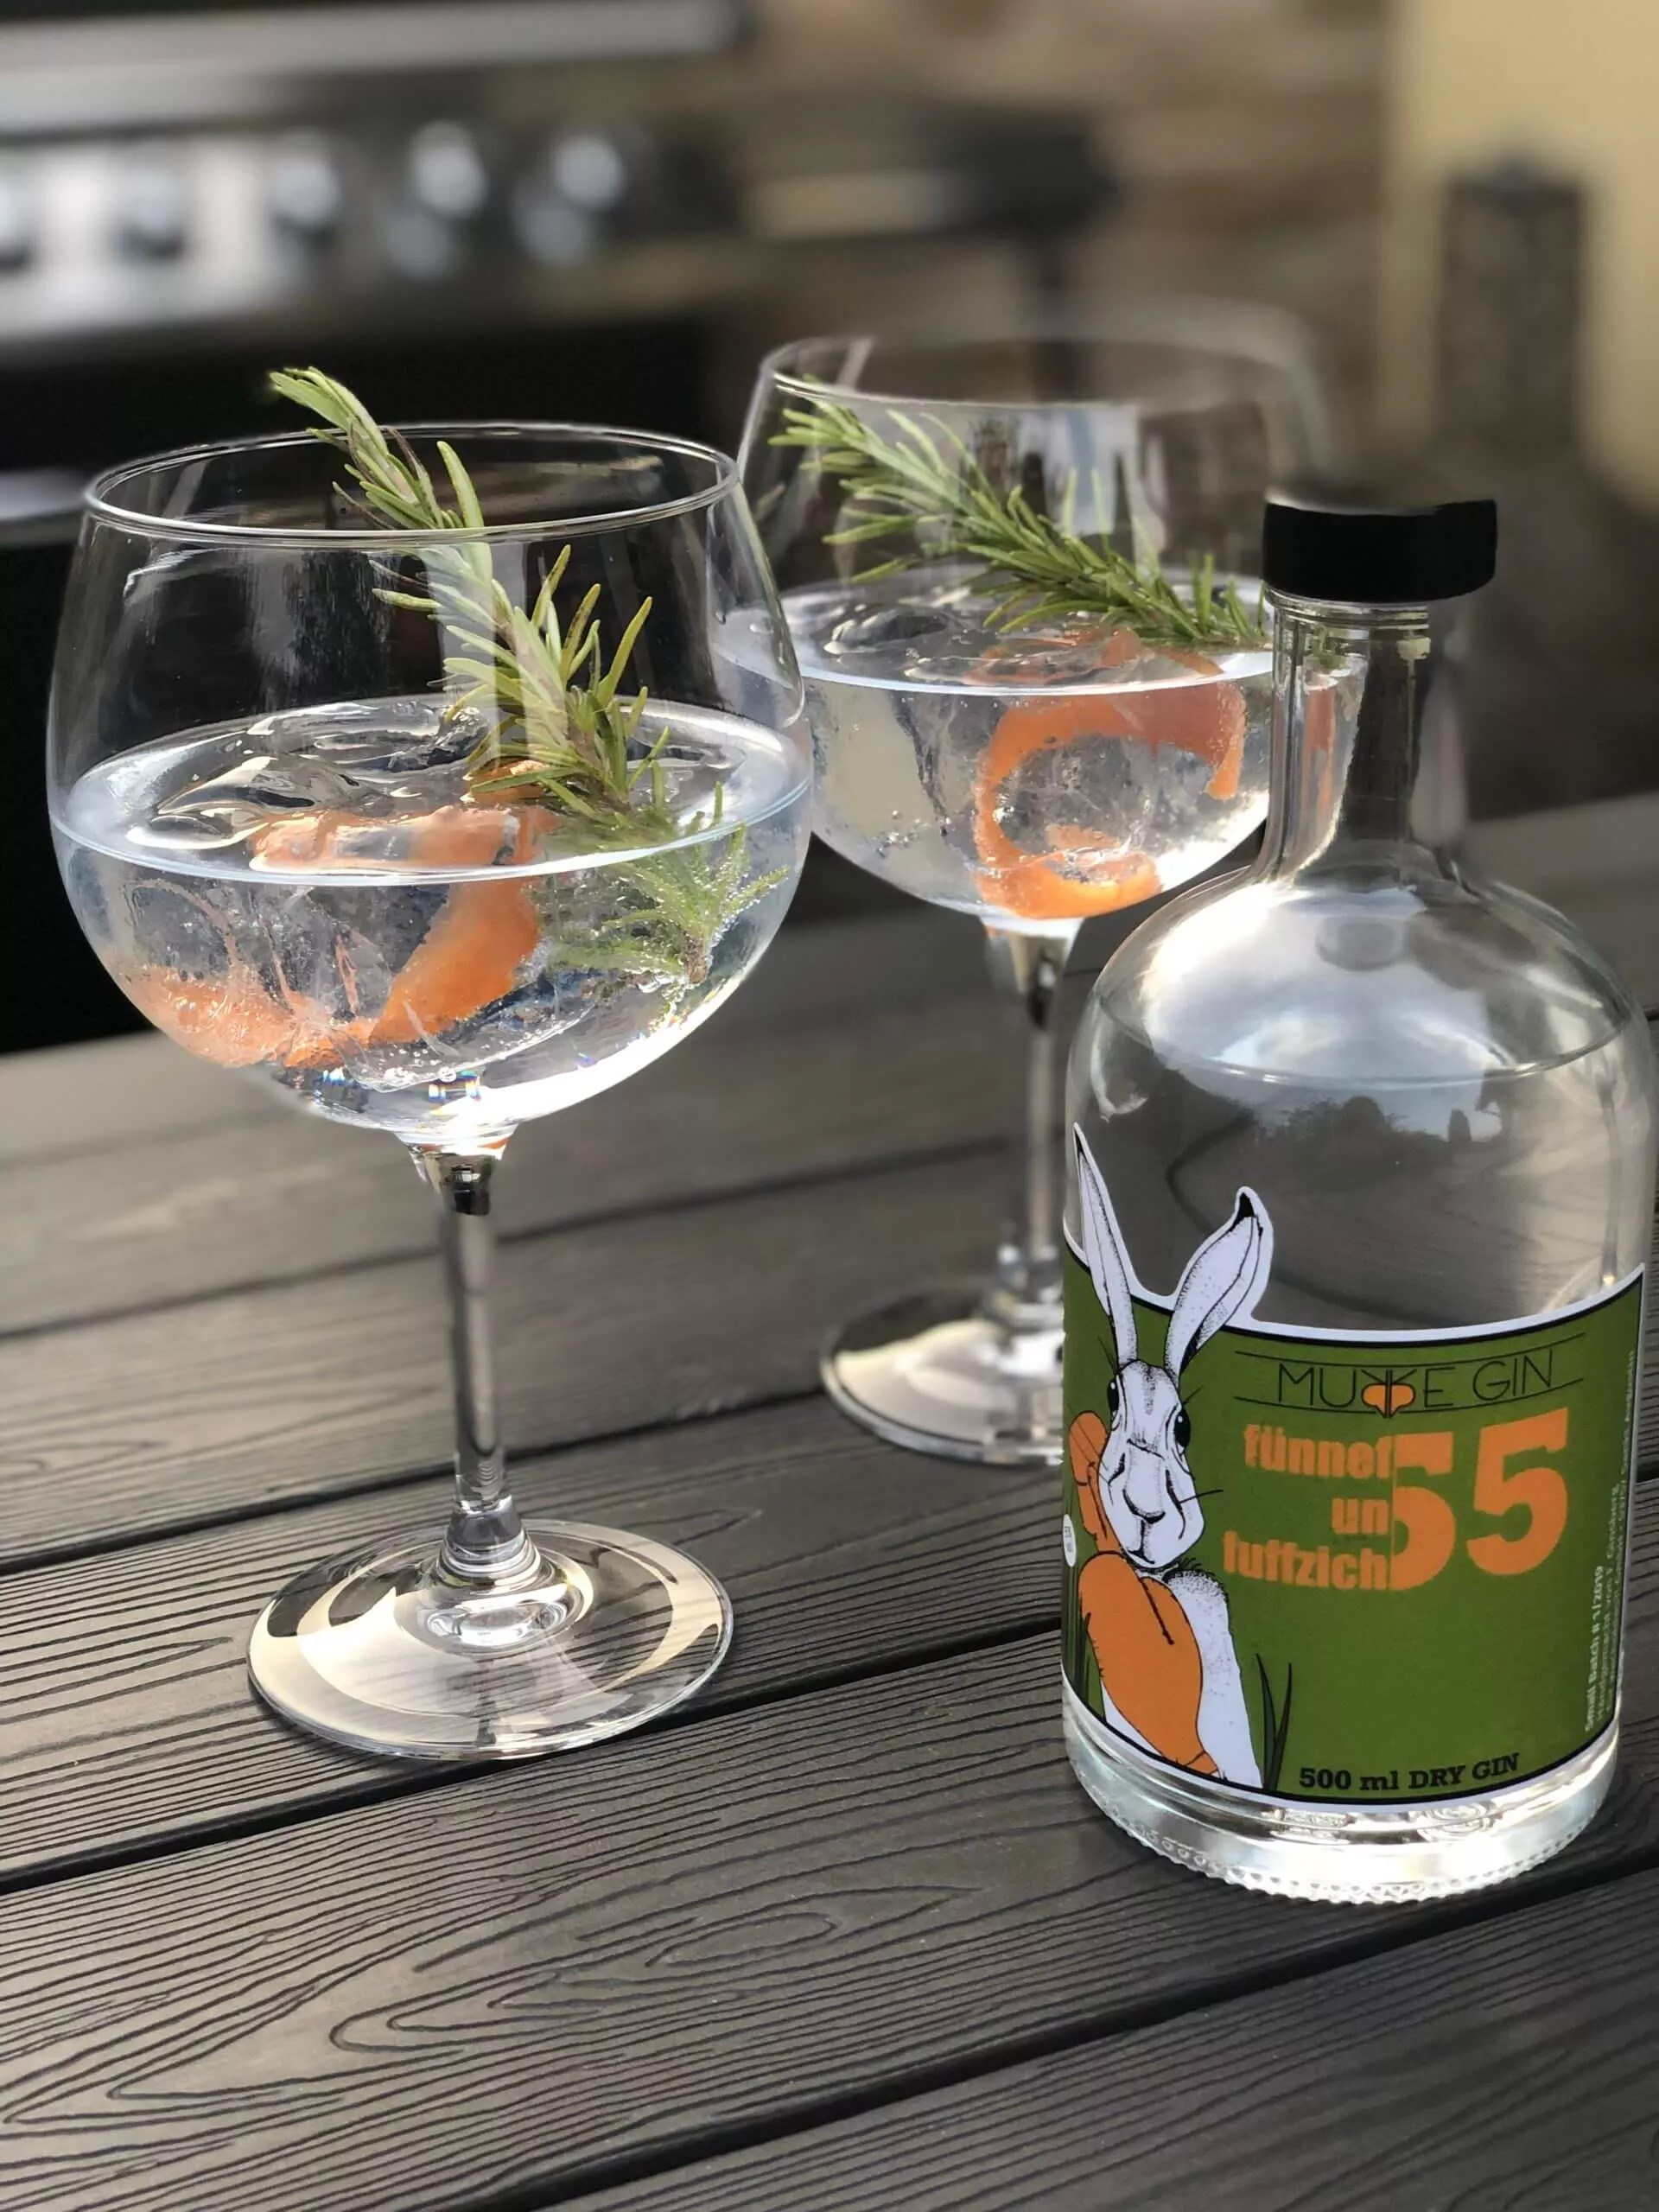 Murre Gin Wingrut - Best German Classic Gin 2020